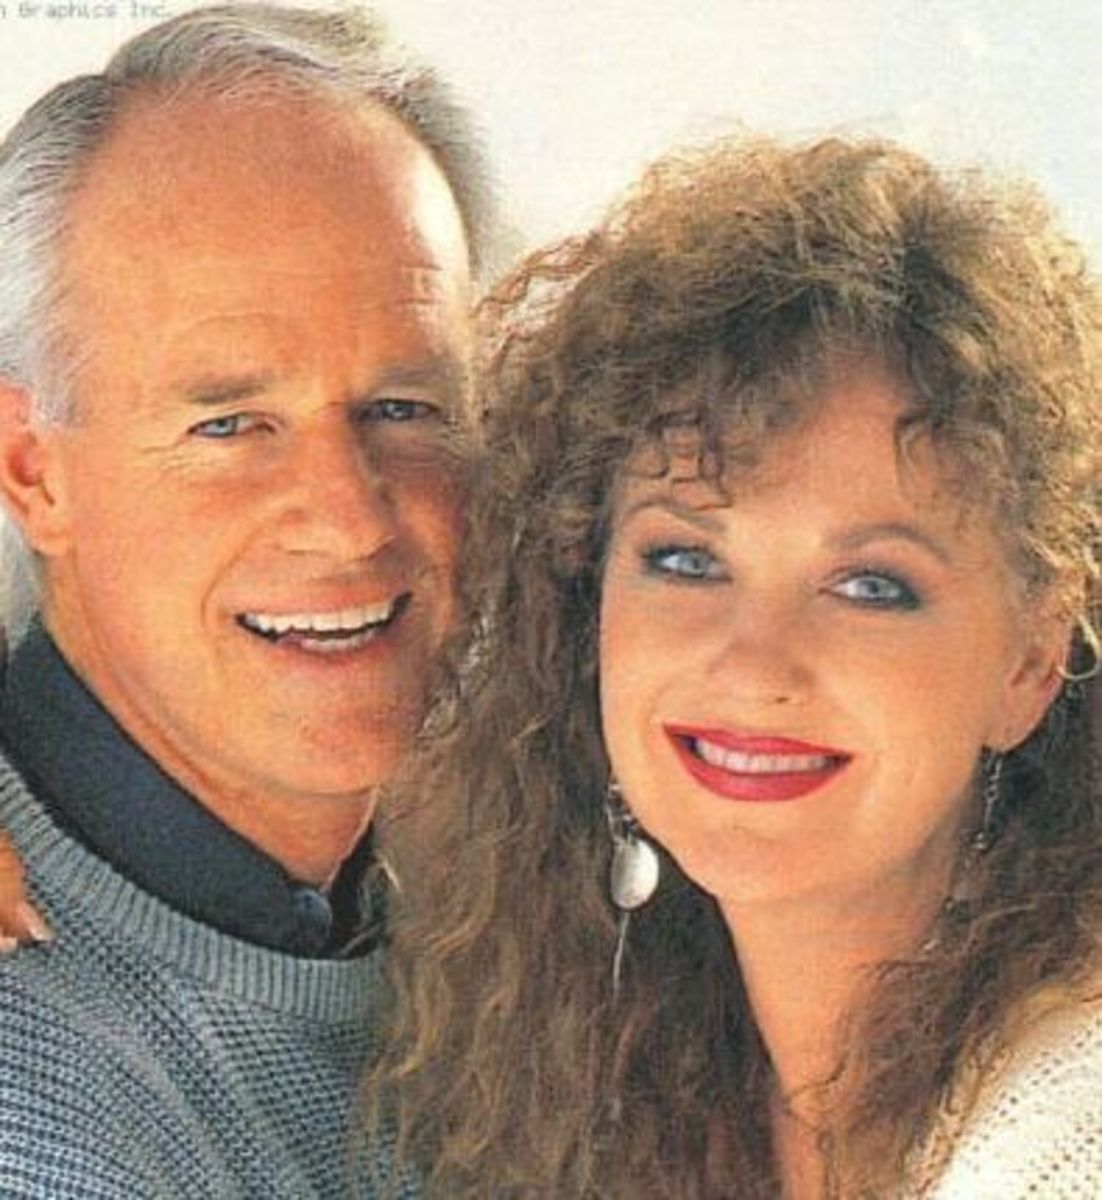 Mike Farrell and Shelley Fabares Married 12/31/84